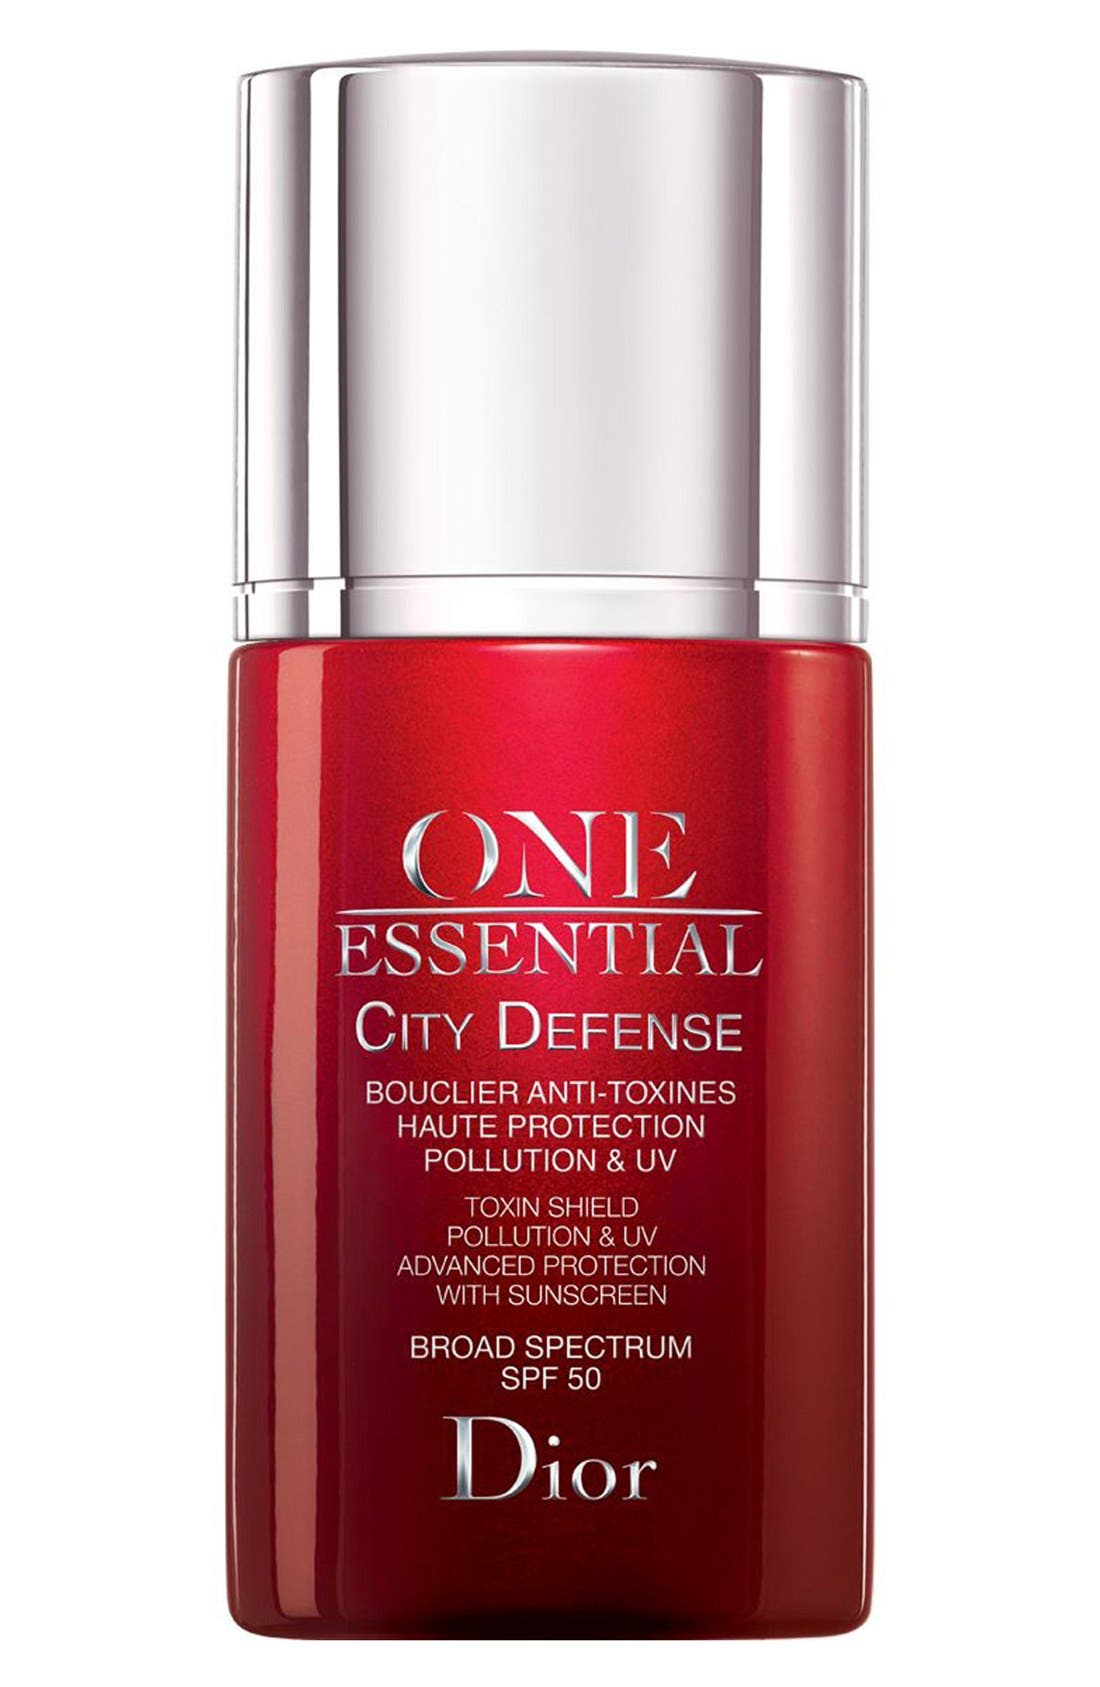 One Essential City Defense Toxin Shield Pollution & UV Advanced Protection SPF 50,                             Main thumbnail 1, color,                             NO COLOR